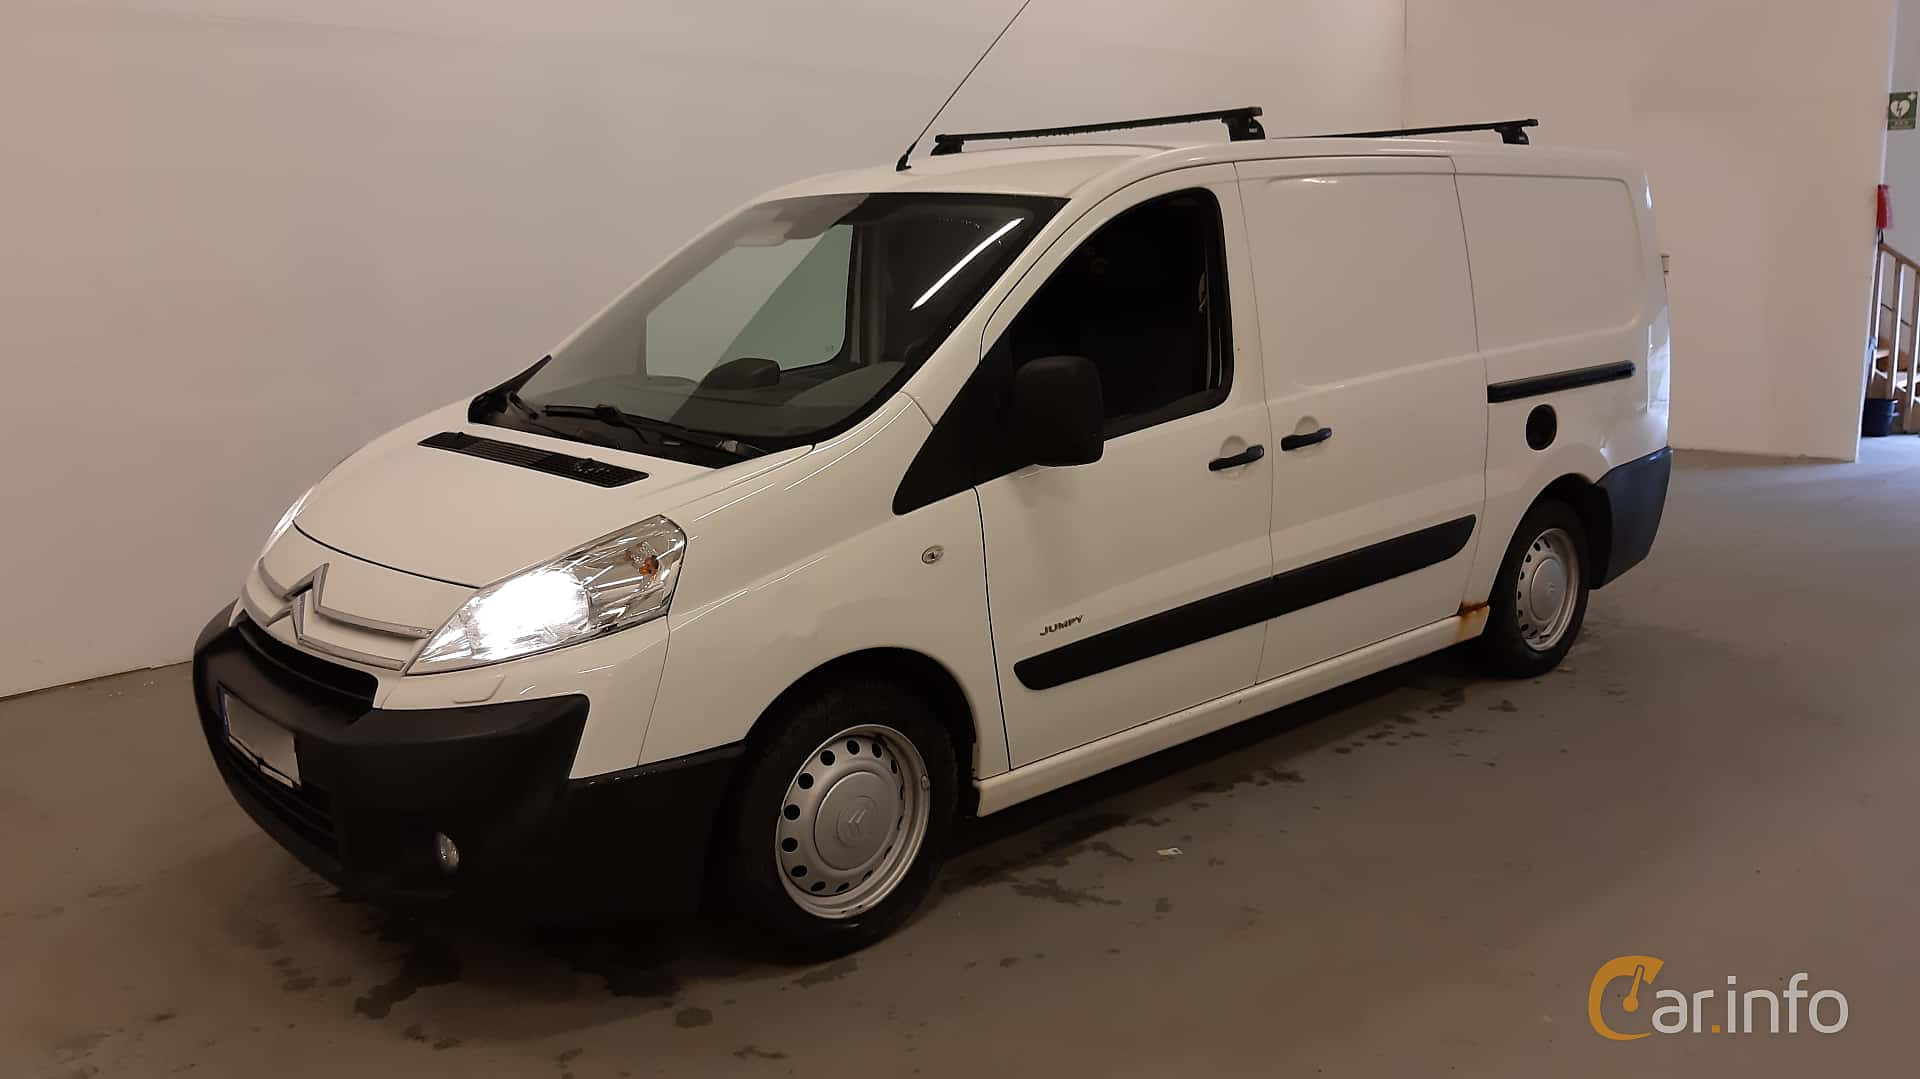 Citroën Jumpy Van 2.0 HDi Manual, 120hp, 2007